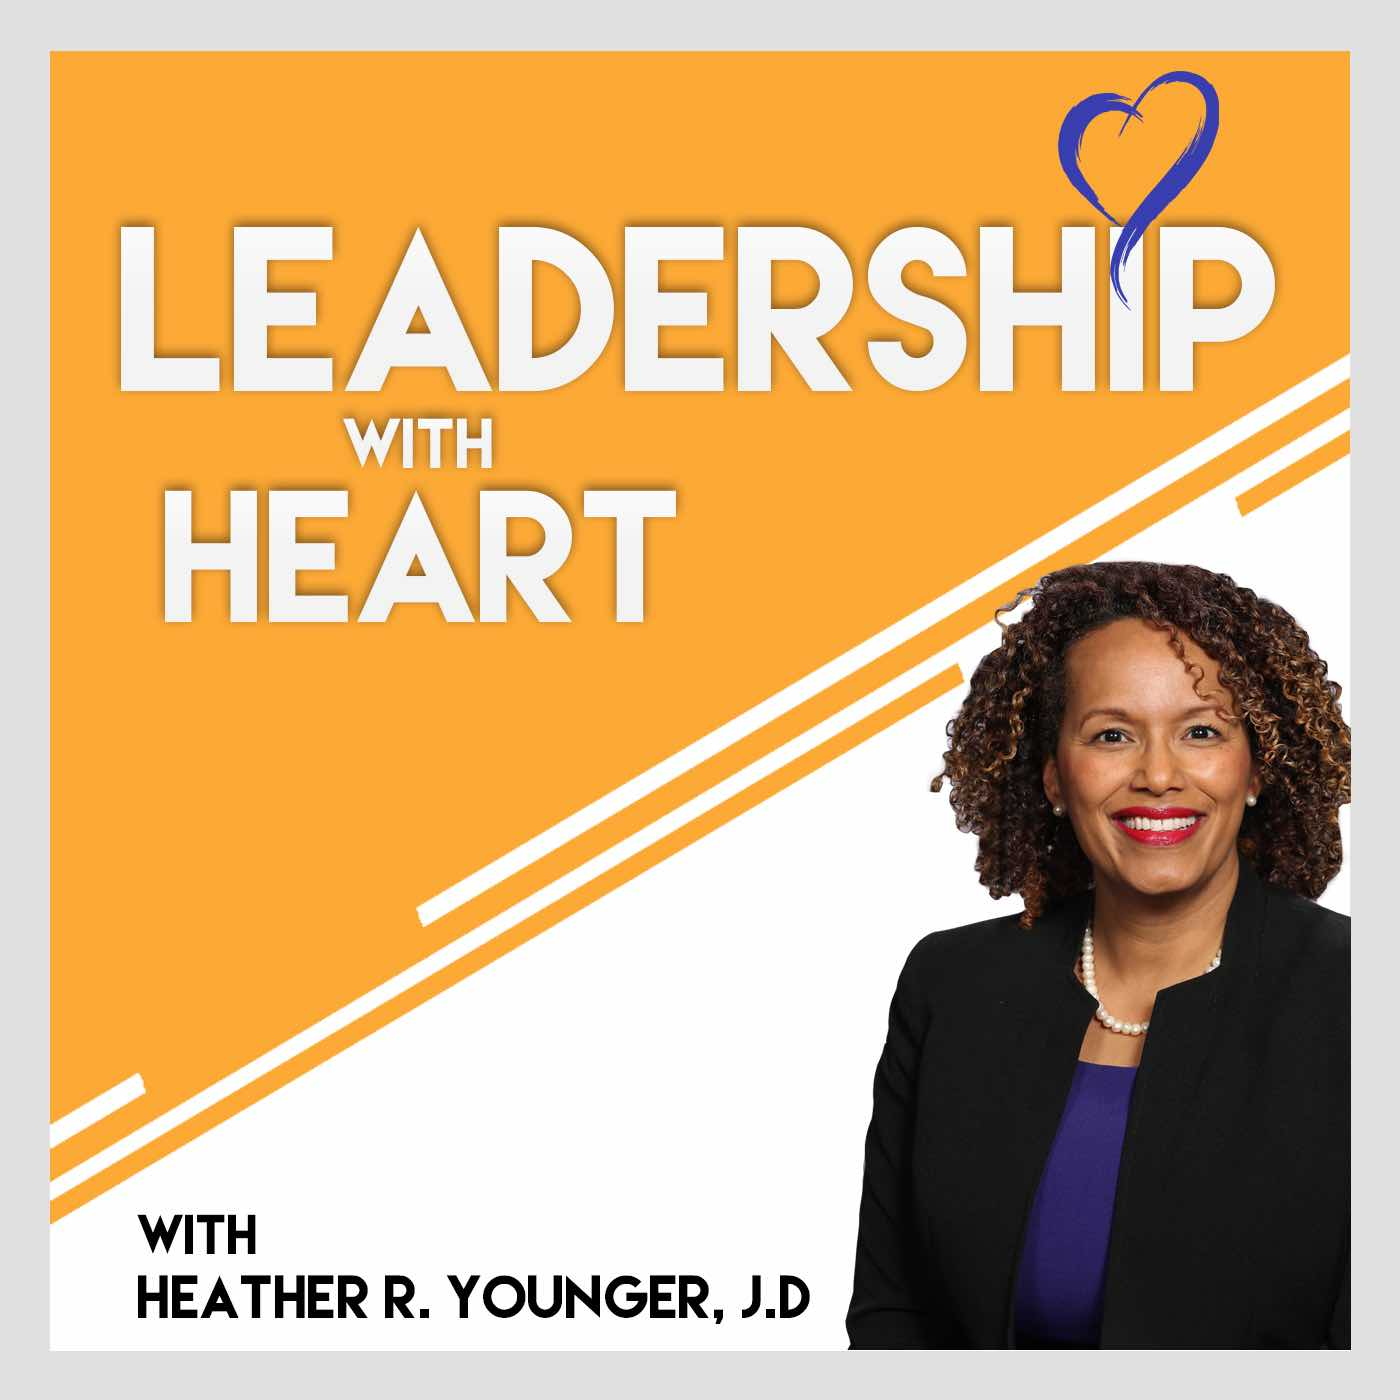 128: Leaders with Heart Take Time to Recognize Those they Lead